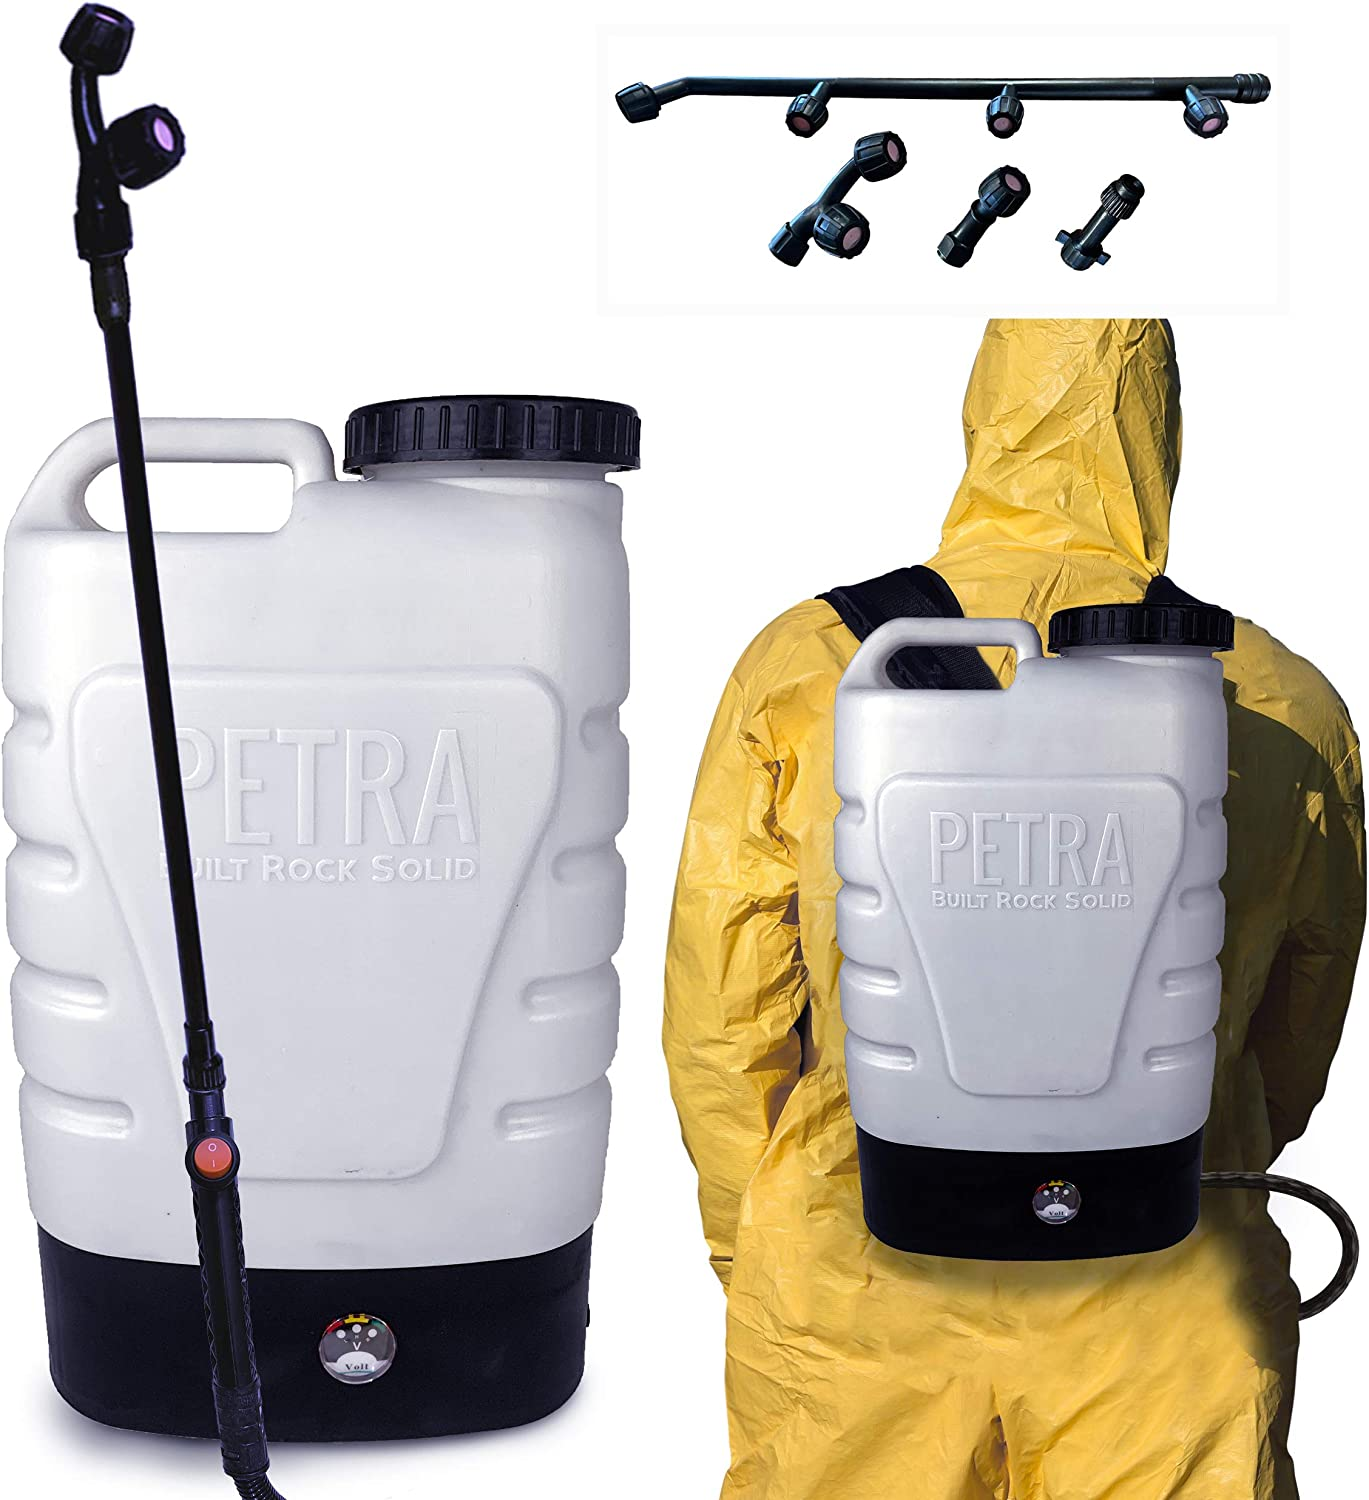 PetraTools 3-Gallon Electrostatic Sprayer for Disinfectant & ULV500 Cleaning Solutions - Fogger Machine for Sanitizing - Cordless Backpack Battery Powered Atomizer (Electro Pro)